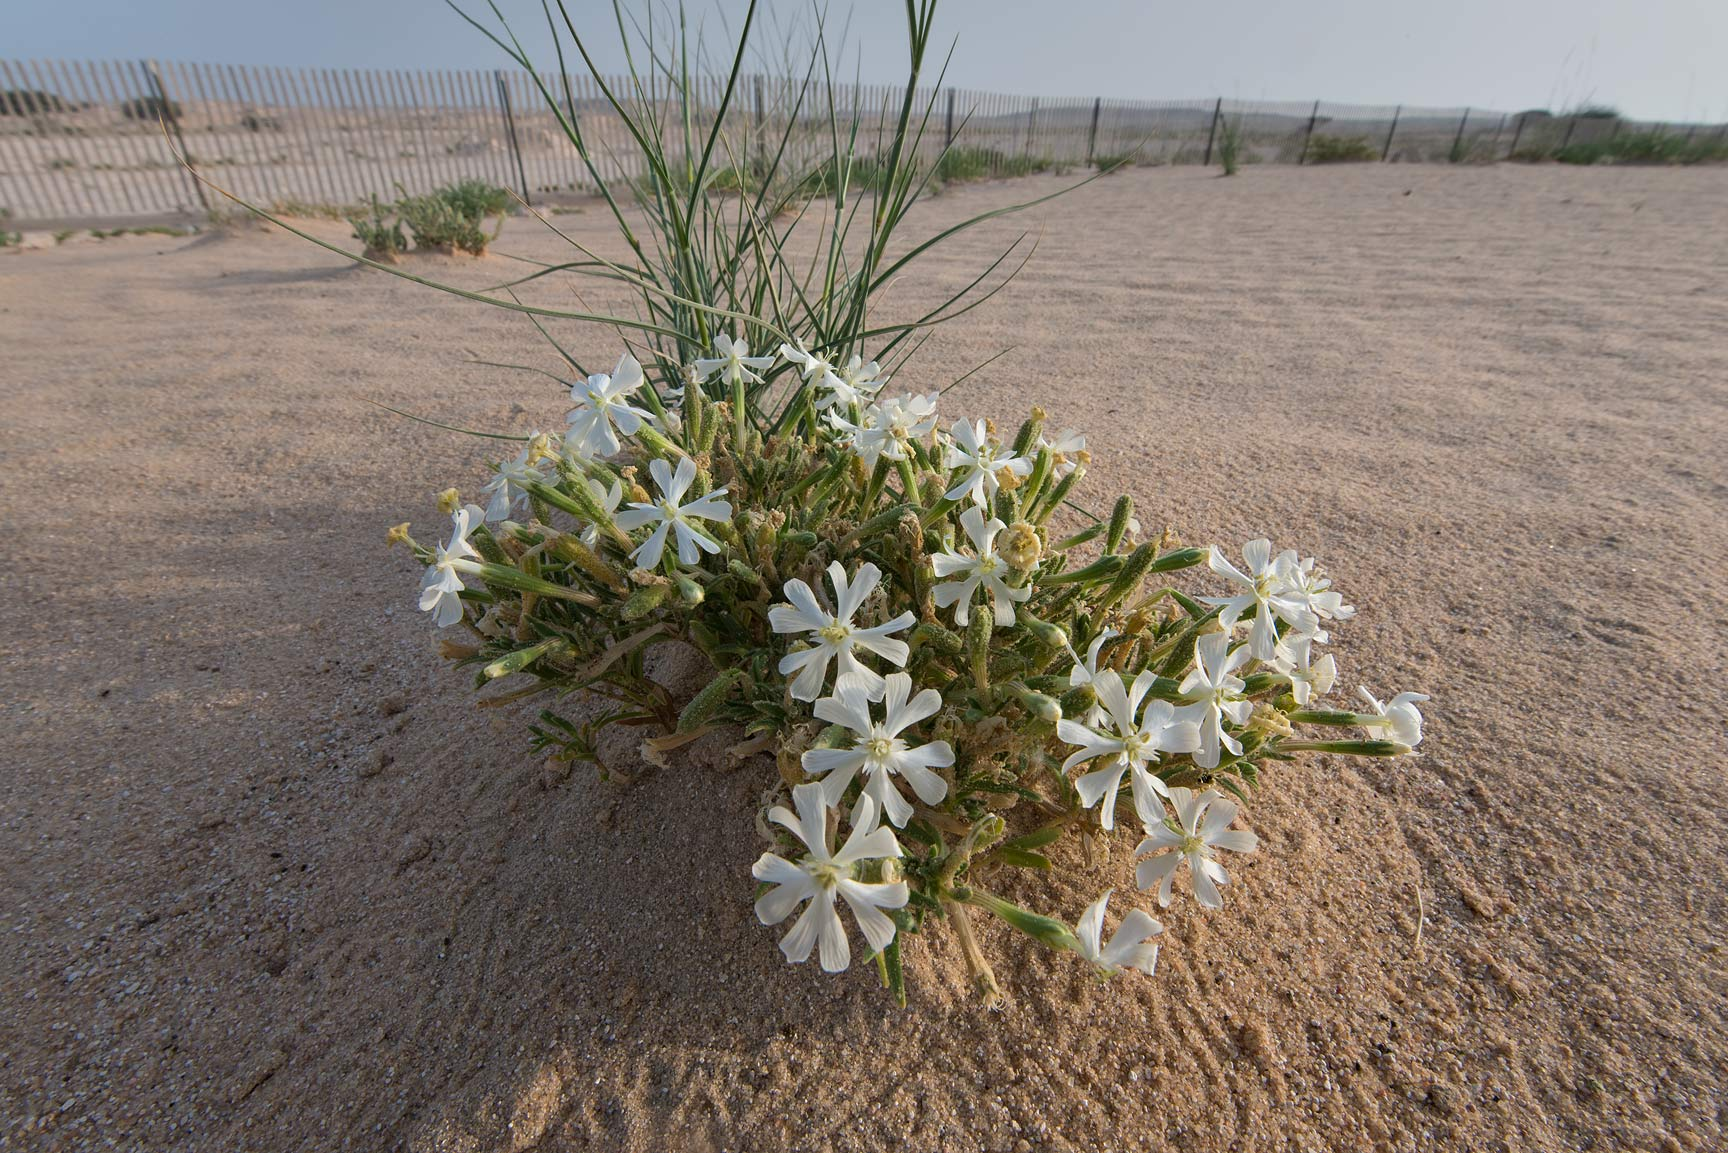 Blooming desert campion (Silene villosa, local...of Khashem Al Nekhsh. Southern Qatar